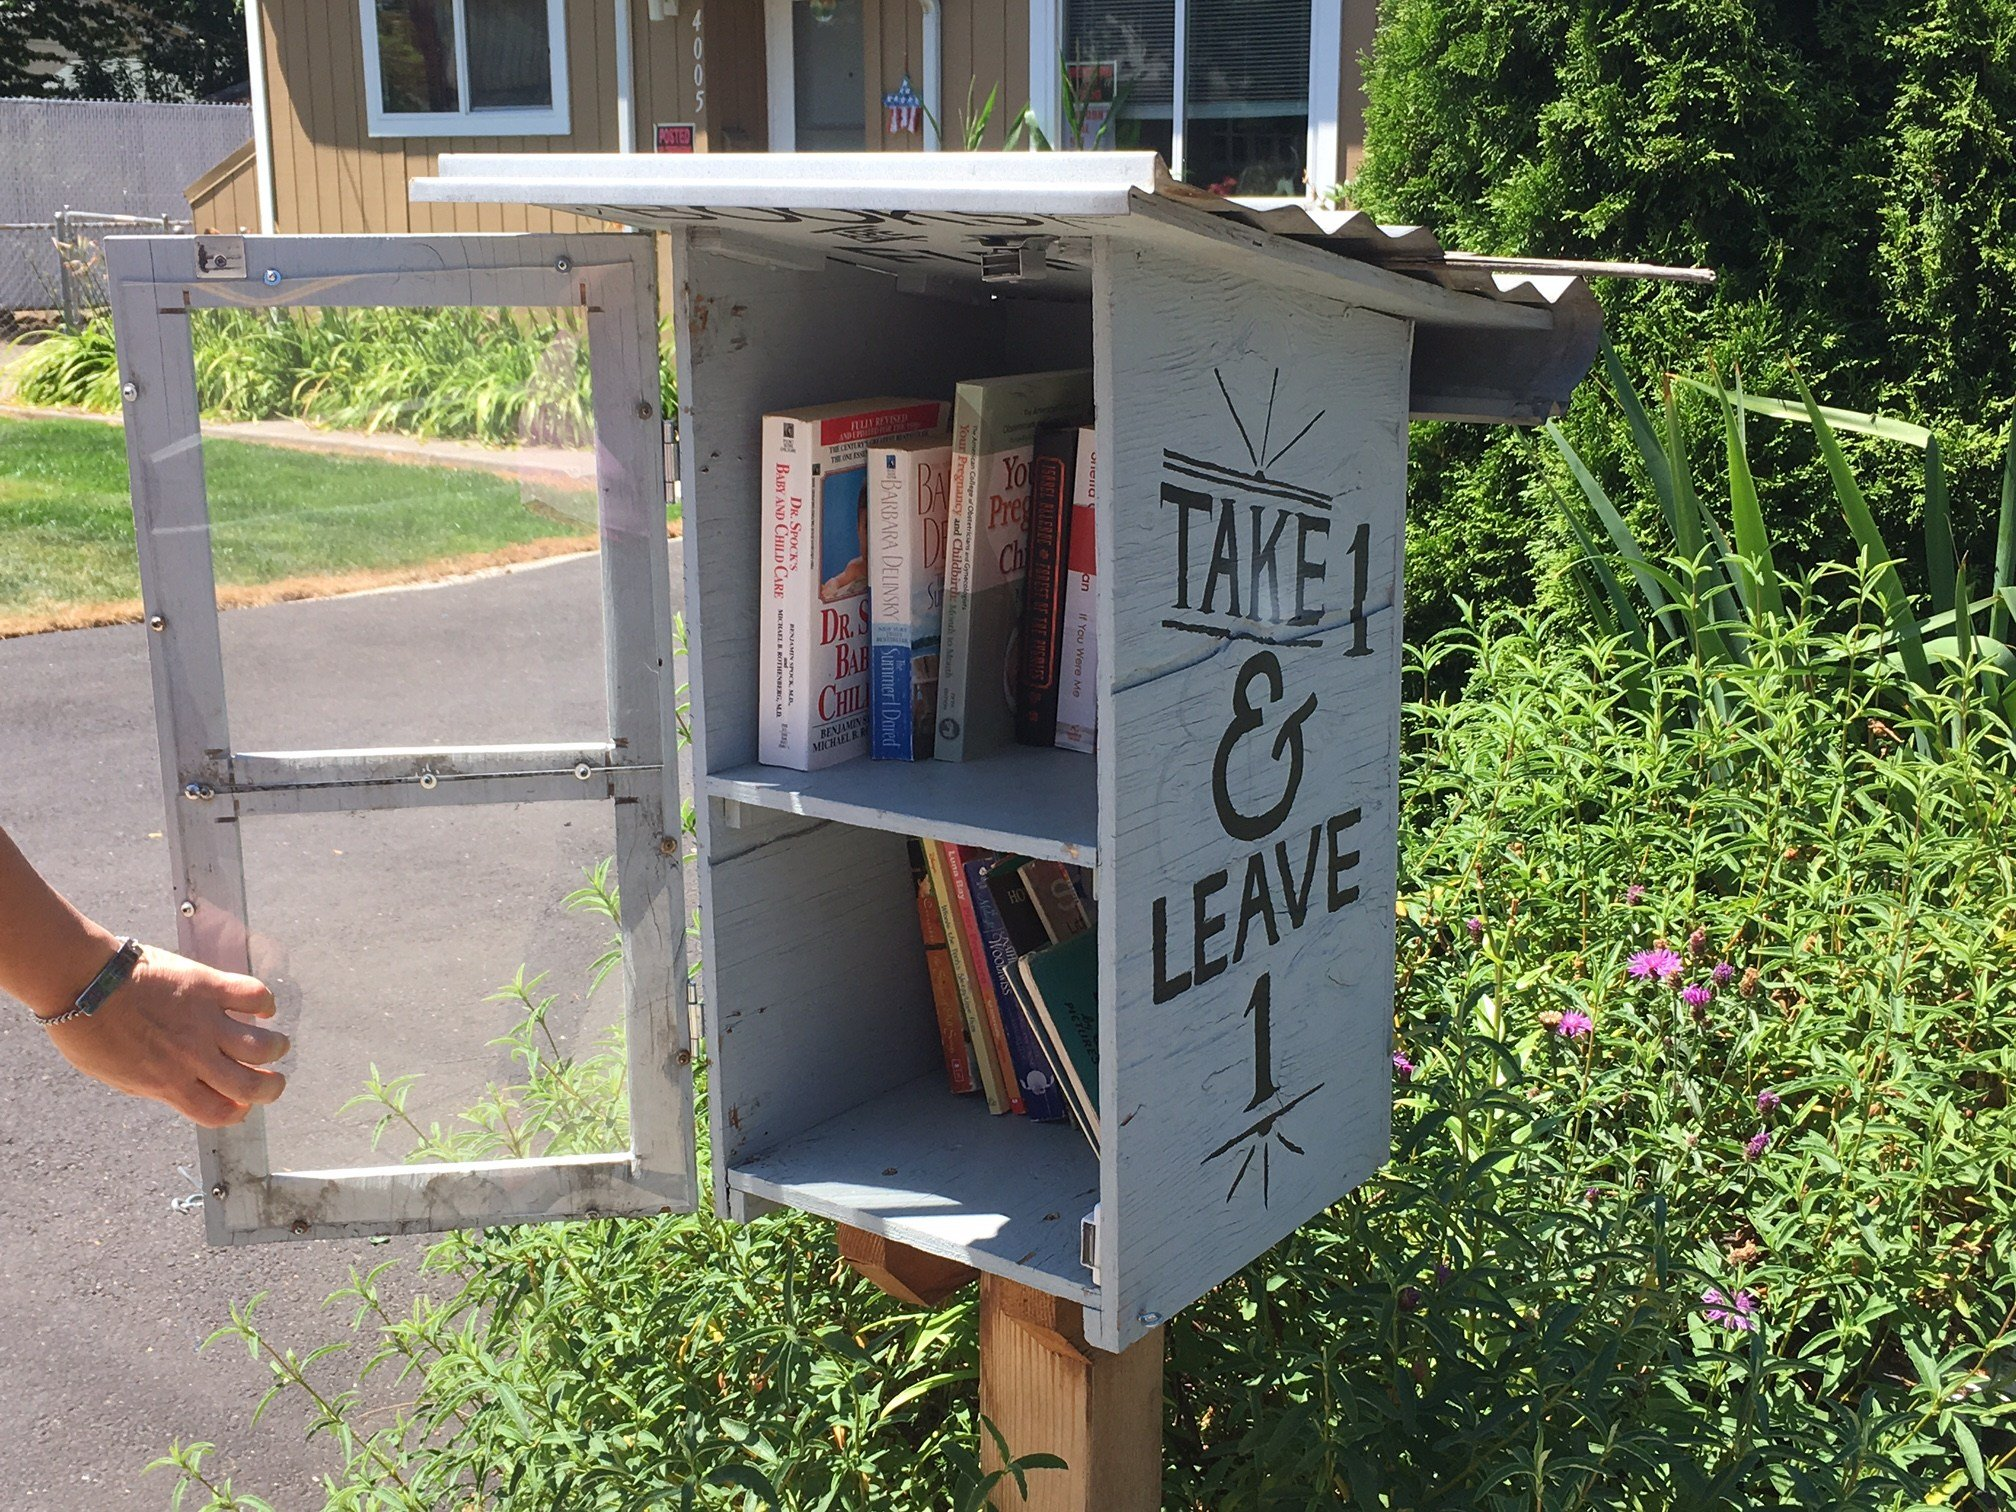 The book box in front of her home. (KPTV)